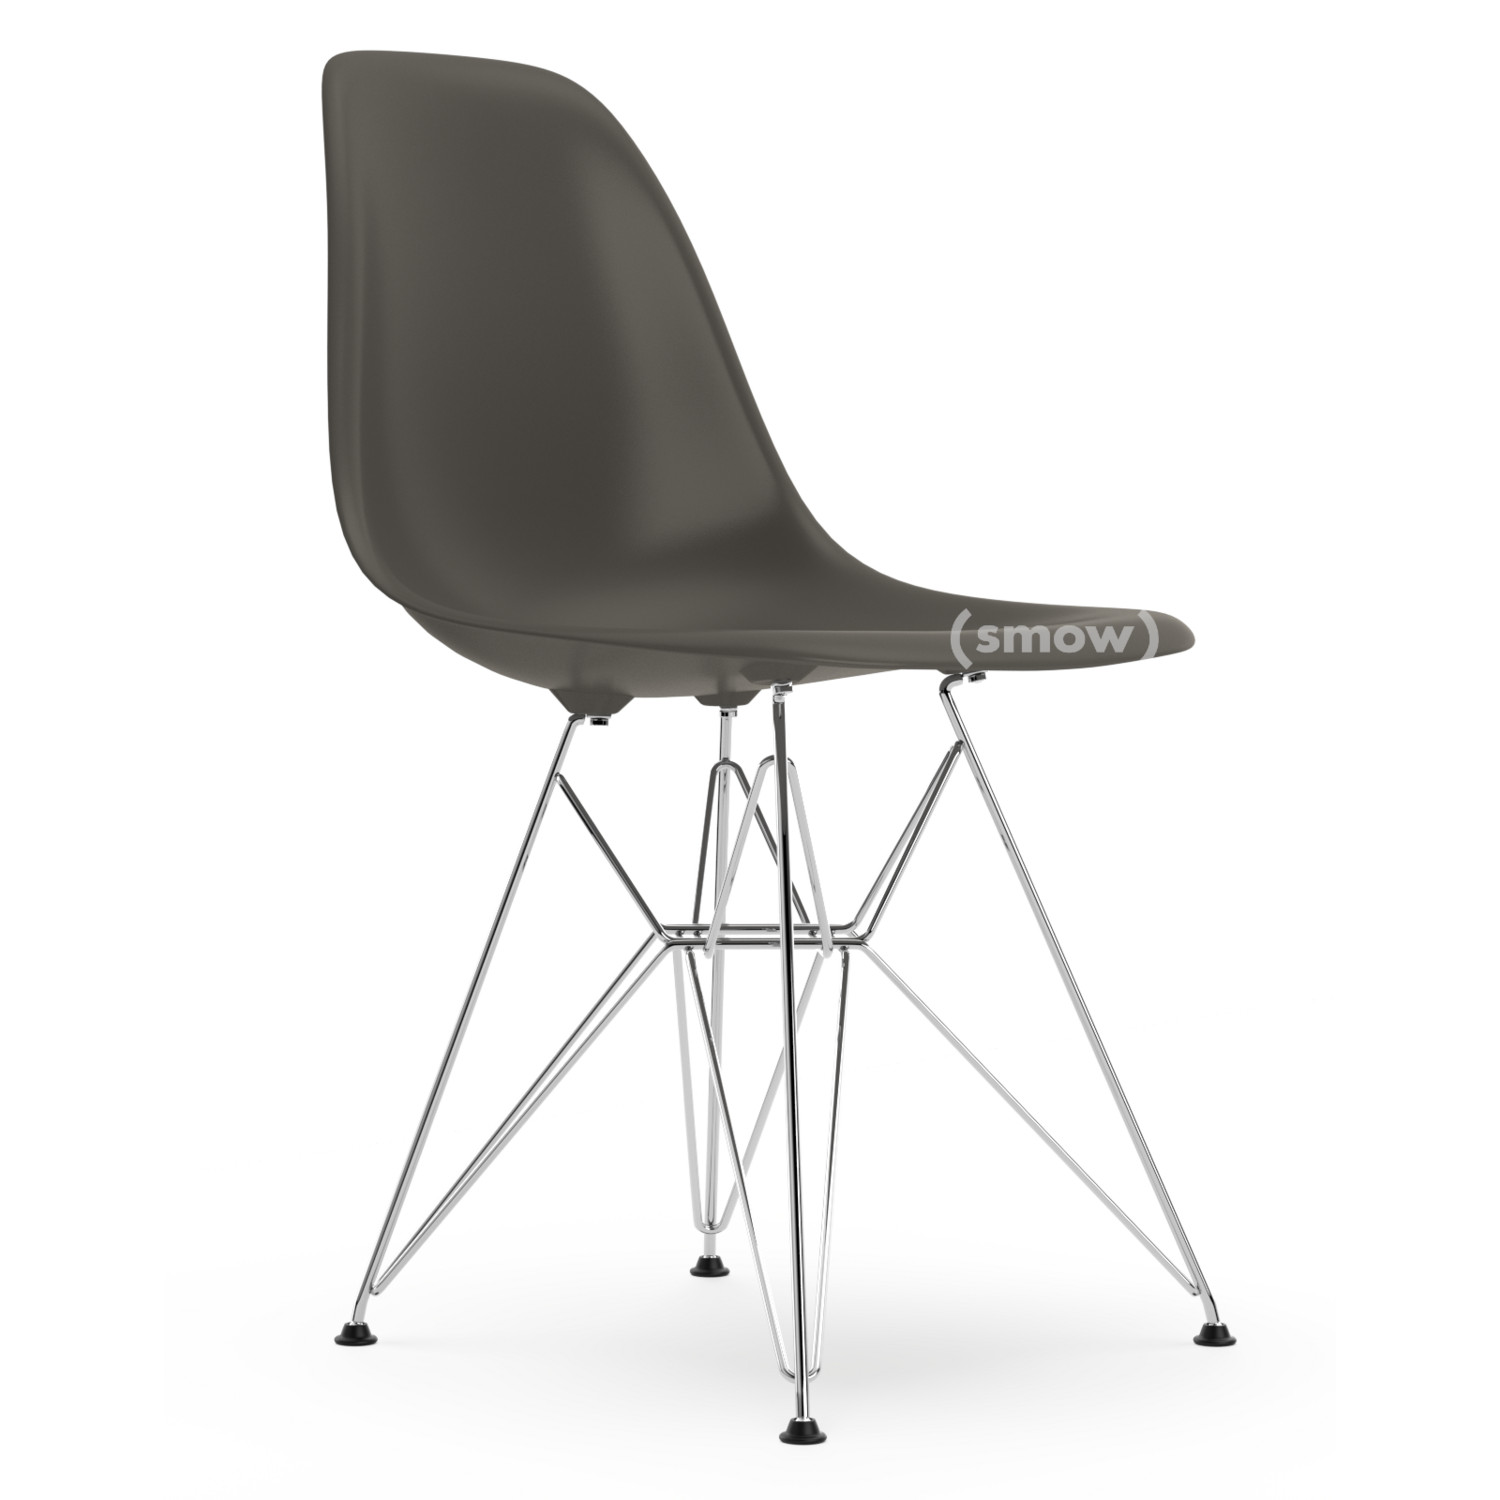 vitra eames plastic side chair dsr basalt grey without upholstery without upholstery. Black Bedroom Furniture Sets. Home Design Ideas